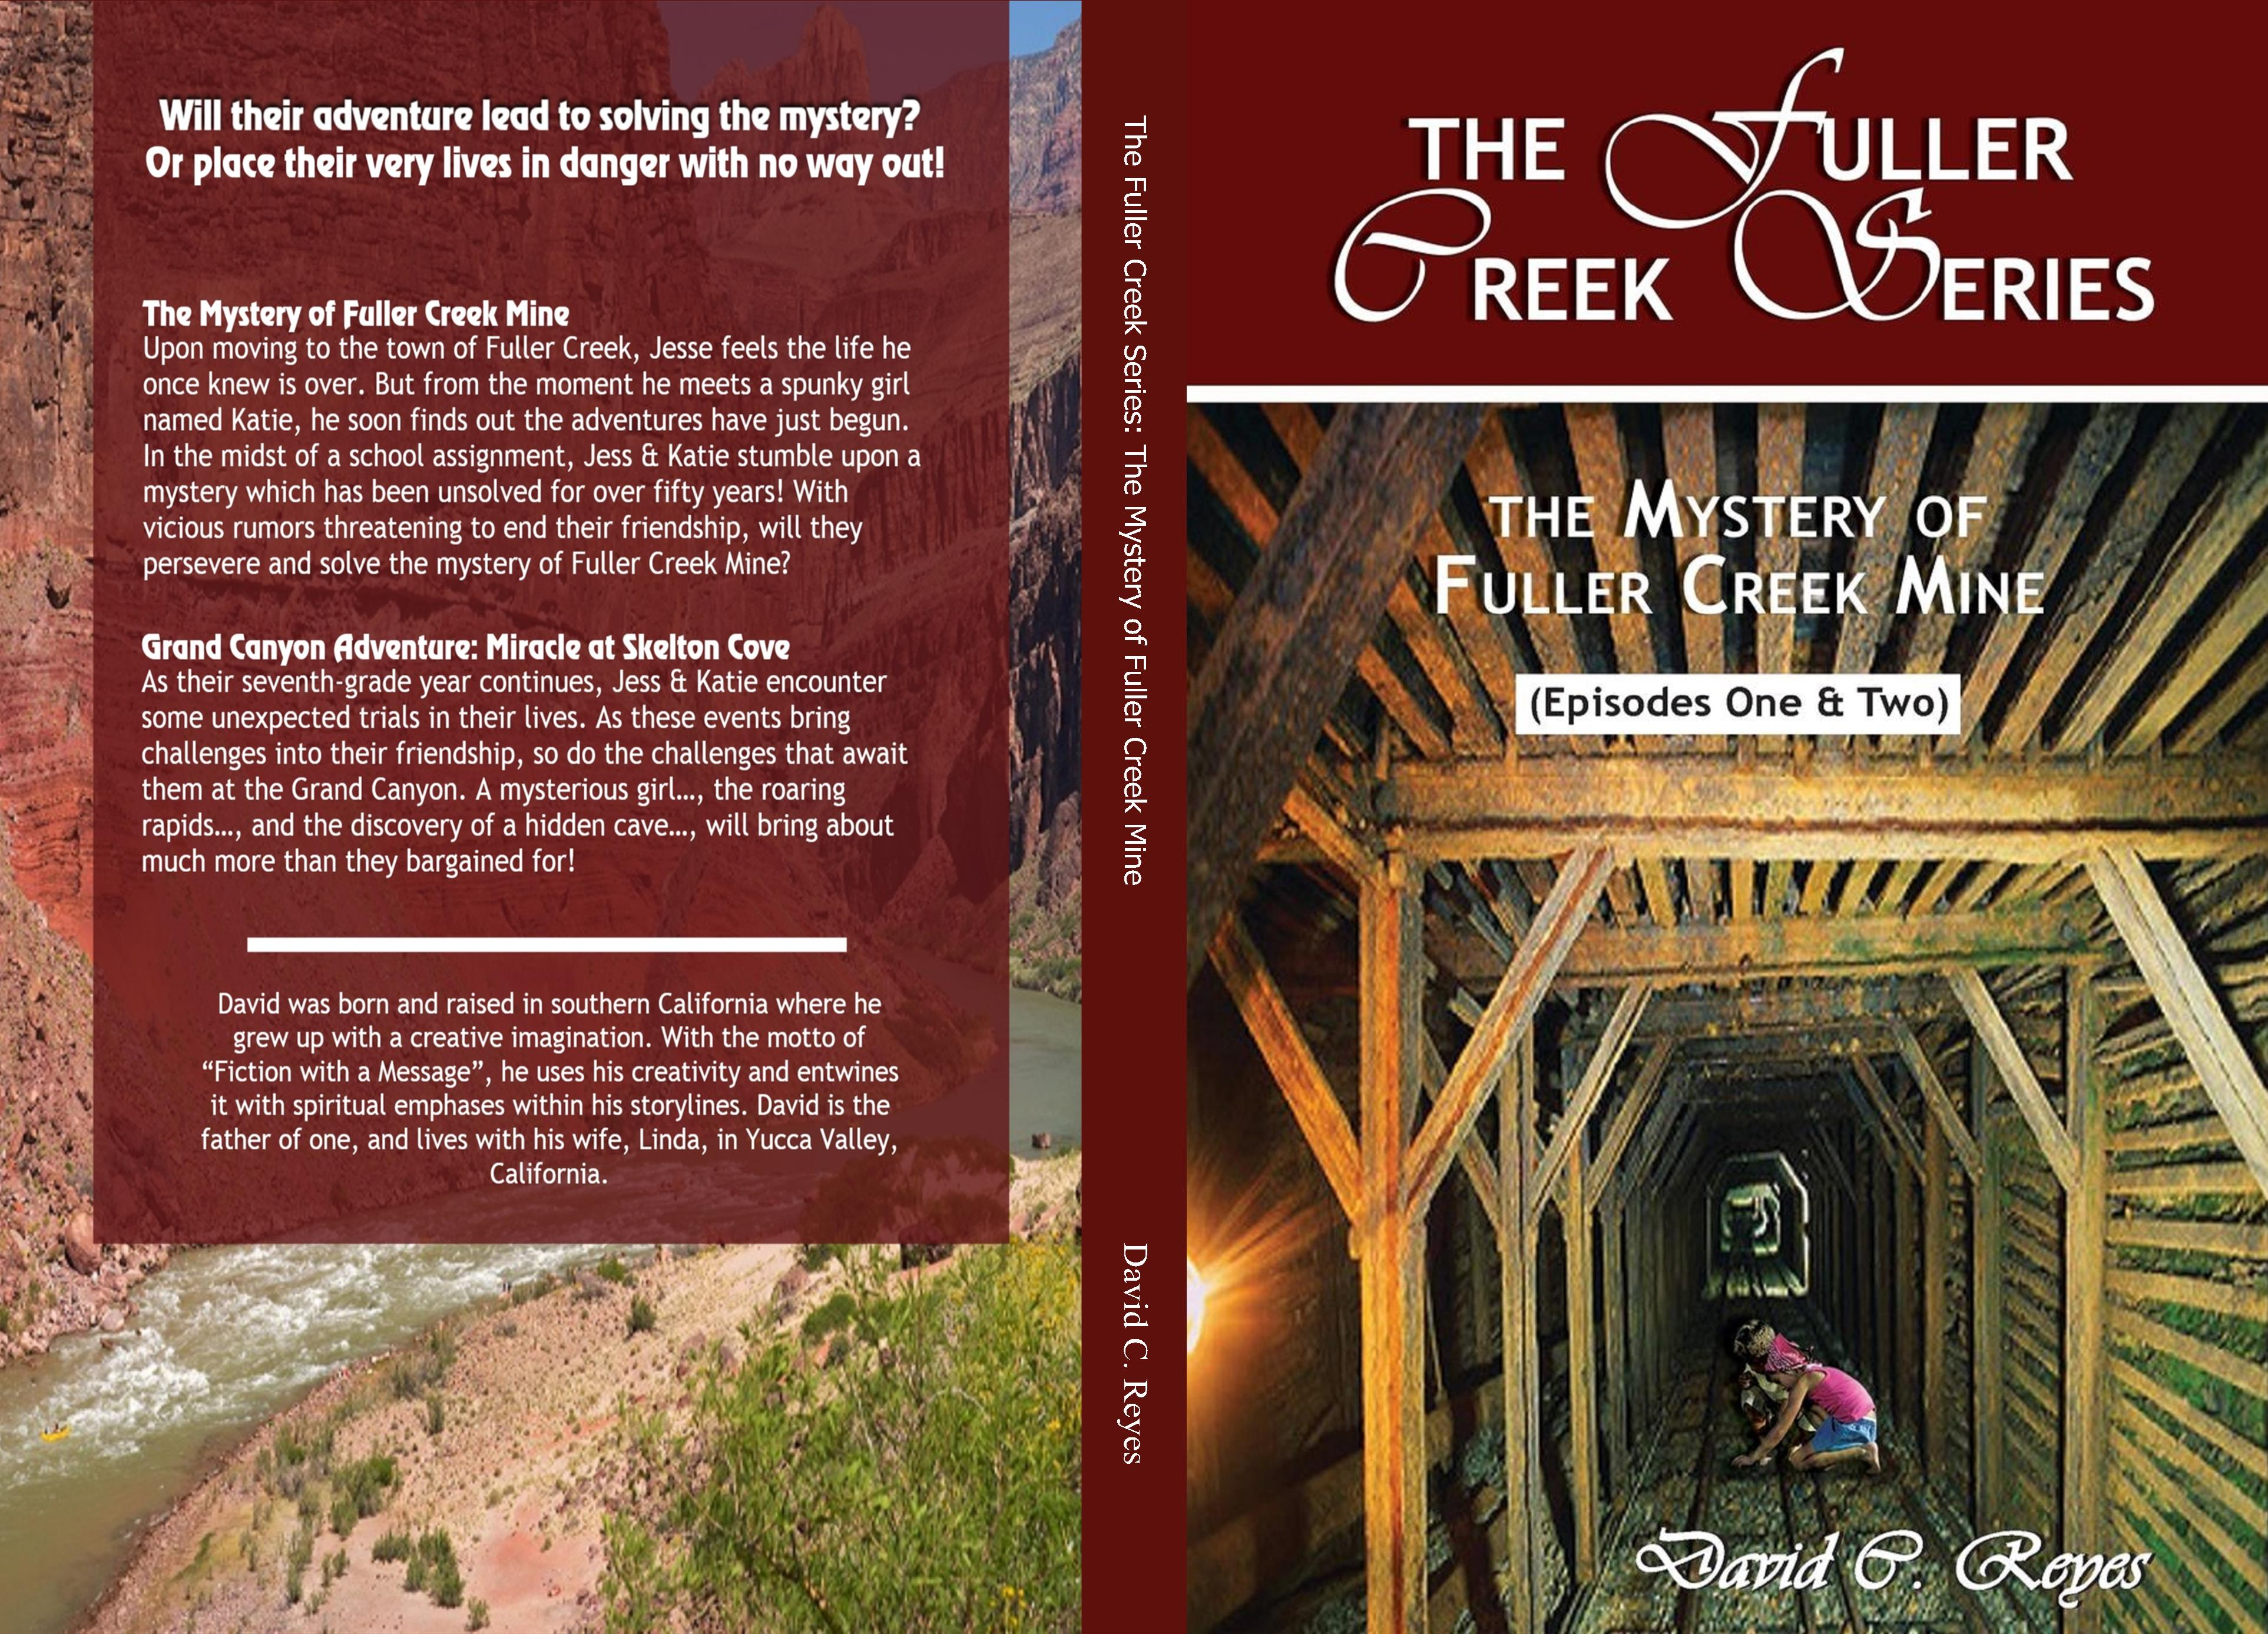 The Fuller Creek Series: The Mystery of Fuller Creek Mine cover image